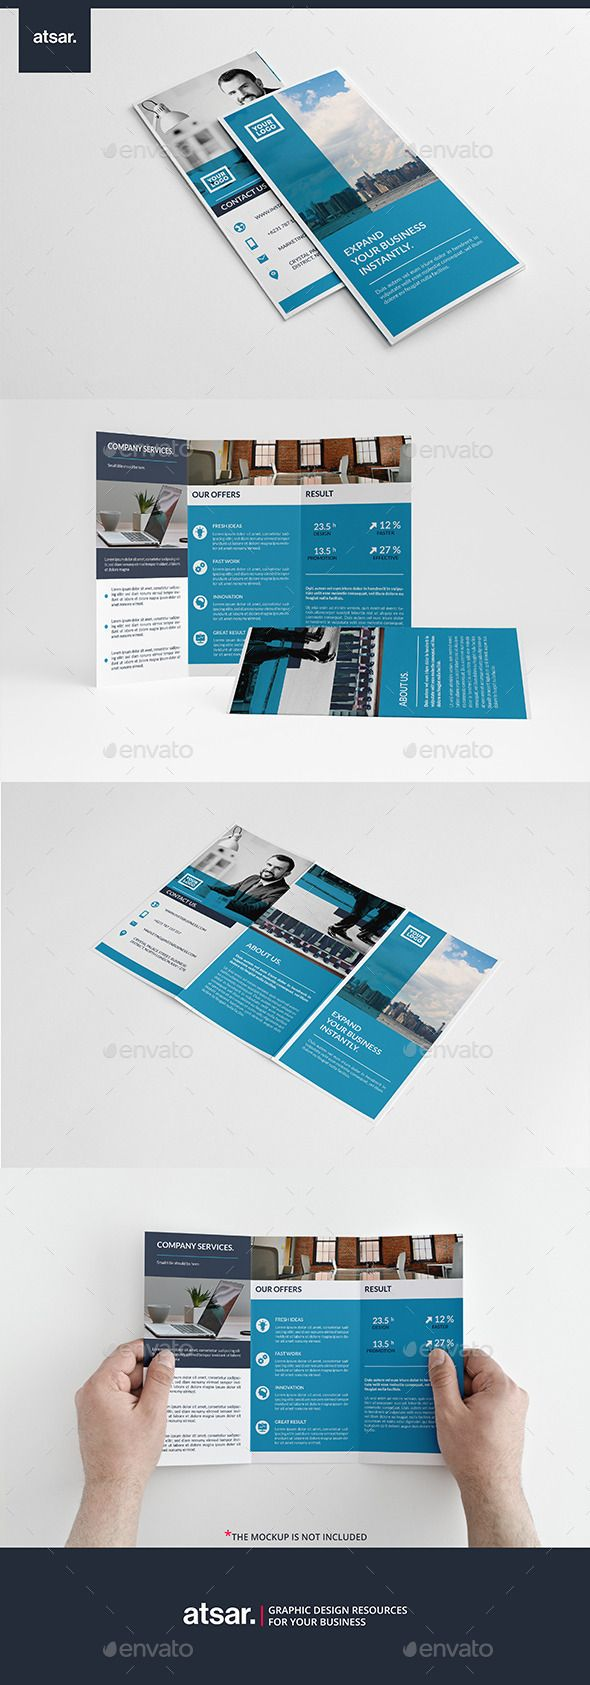 Blue Corporate Brochure Template InDesign INDD #design Download: http://graphicriver.net/item/blue-corporate-brochure/13217595?ref=ksioks